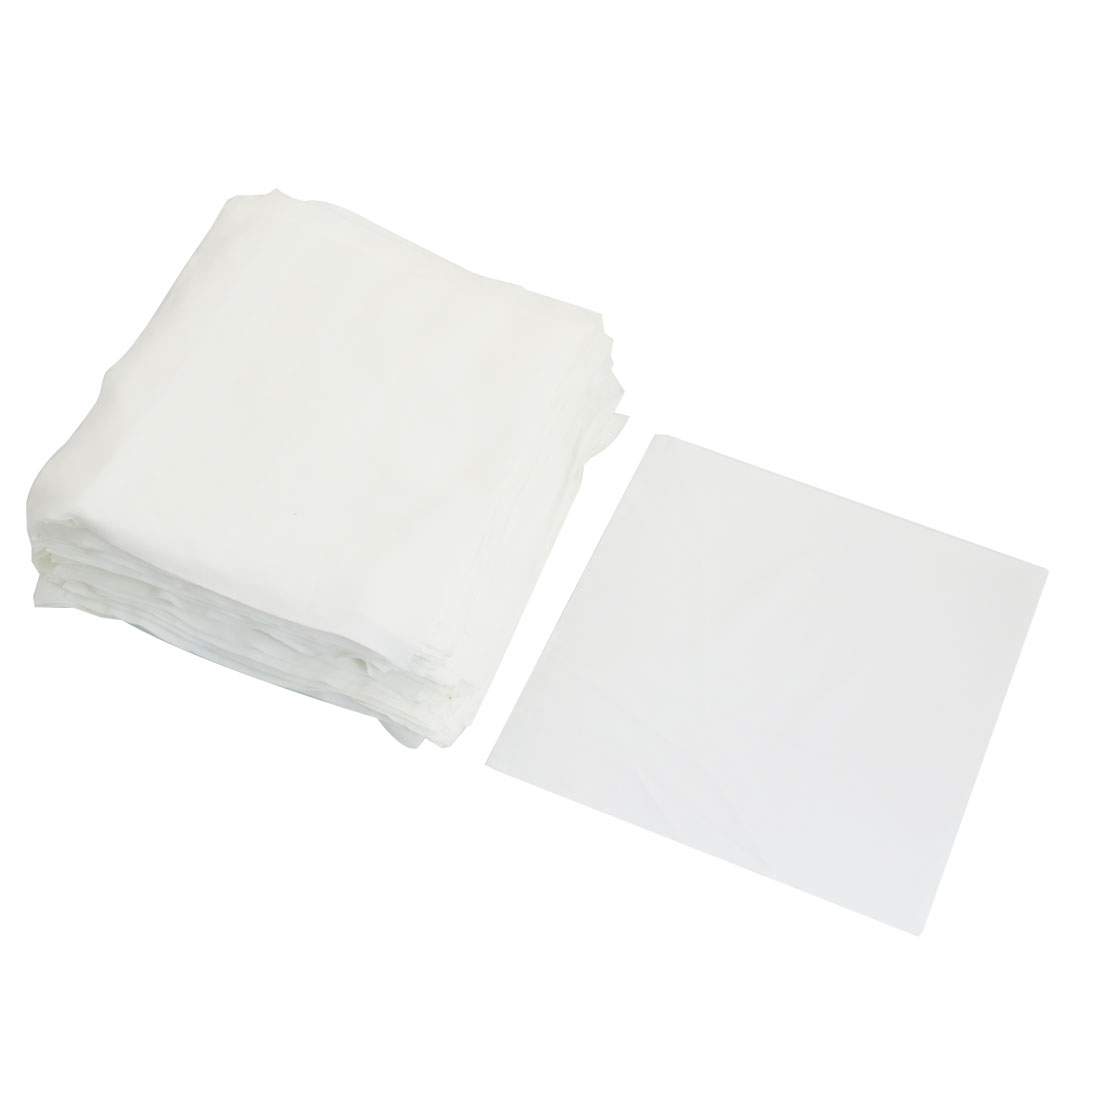 "100 Pcs 6"" x 6"" White Dustless Cleanroom Wiper Wiping Cloth - image 1 of 1"